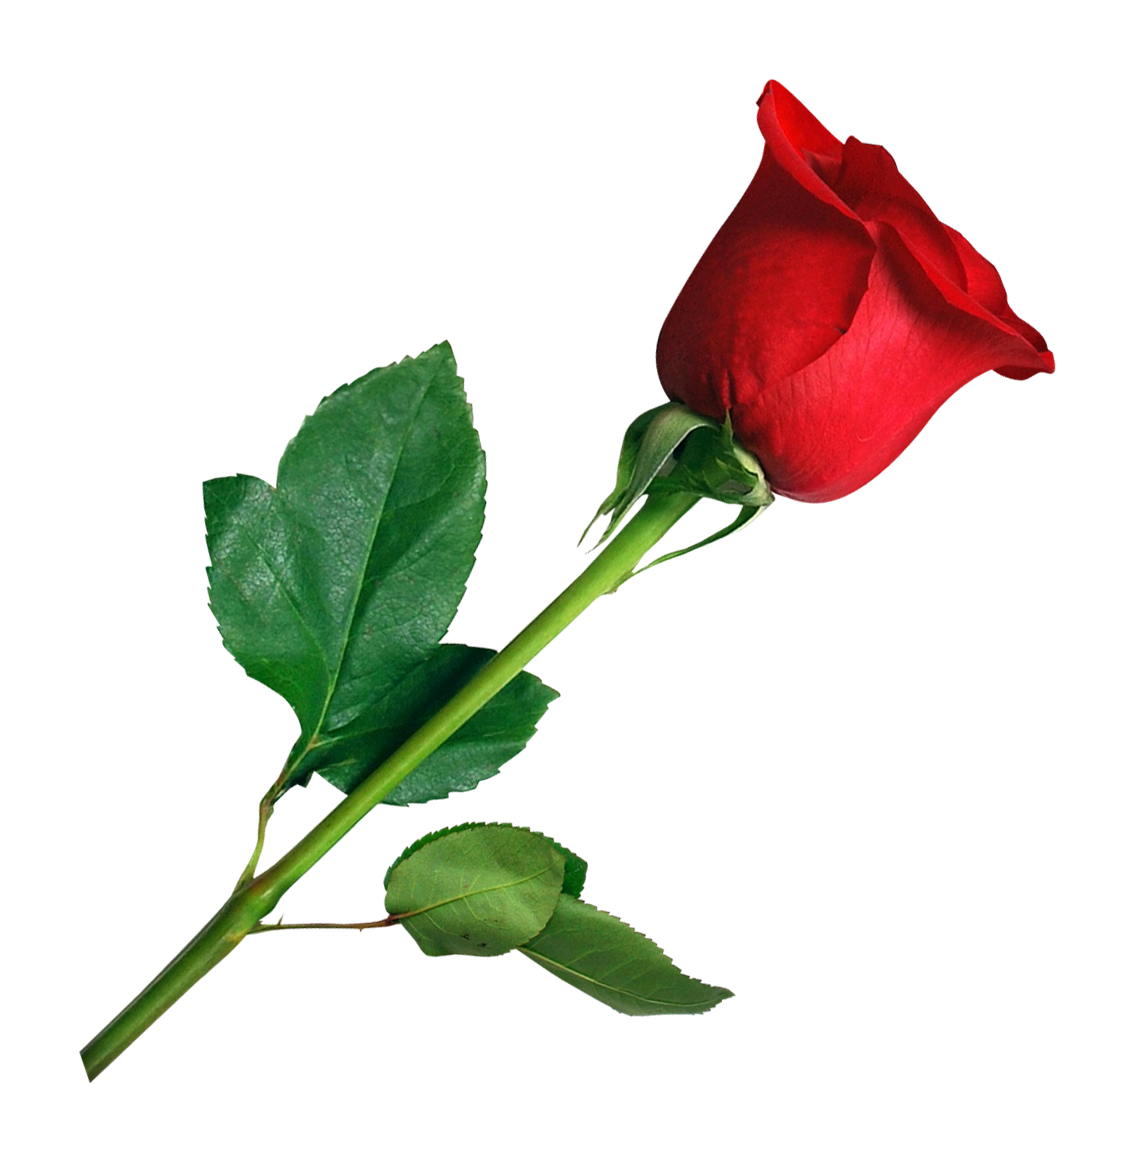 Flower image pngpix transparent. Rose .png png graphic transparent